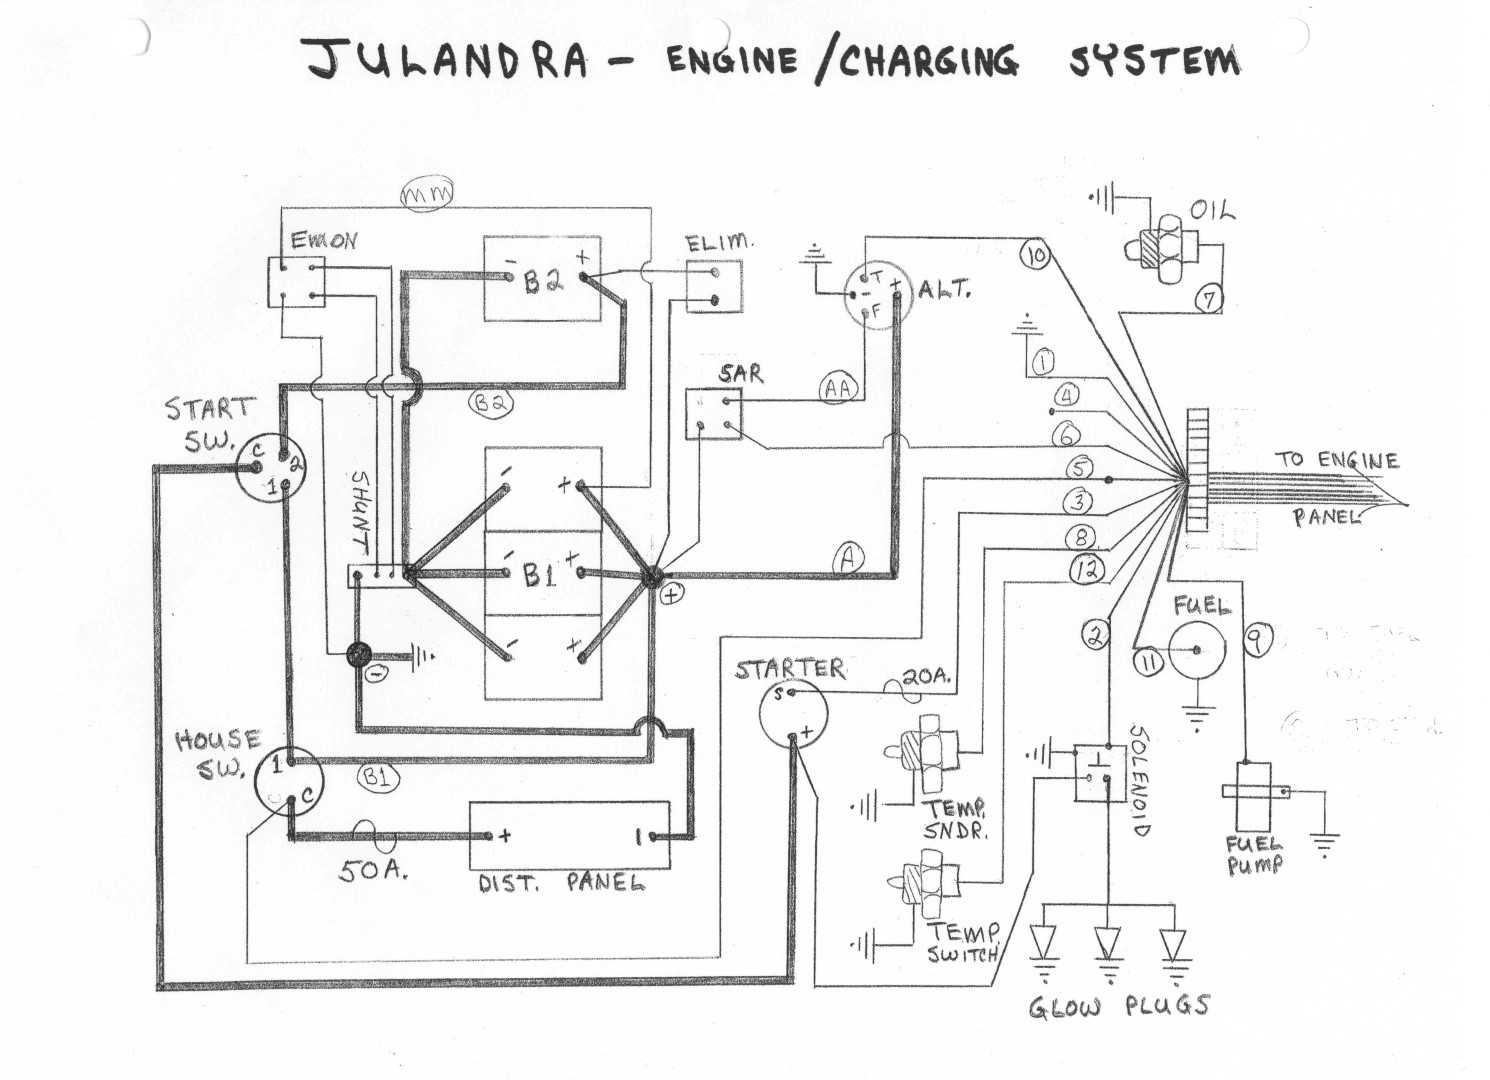 Catalina 25 12 Volt Wiring Diagram